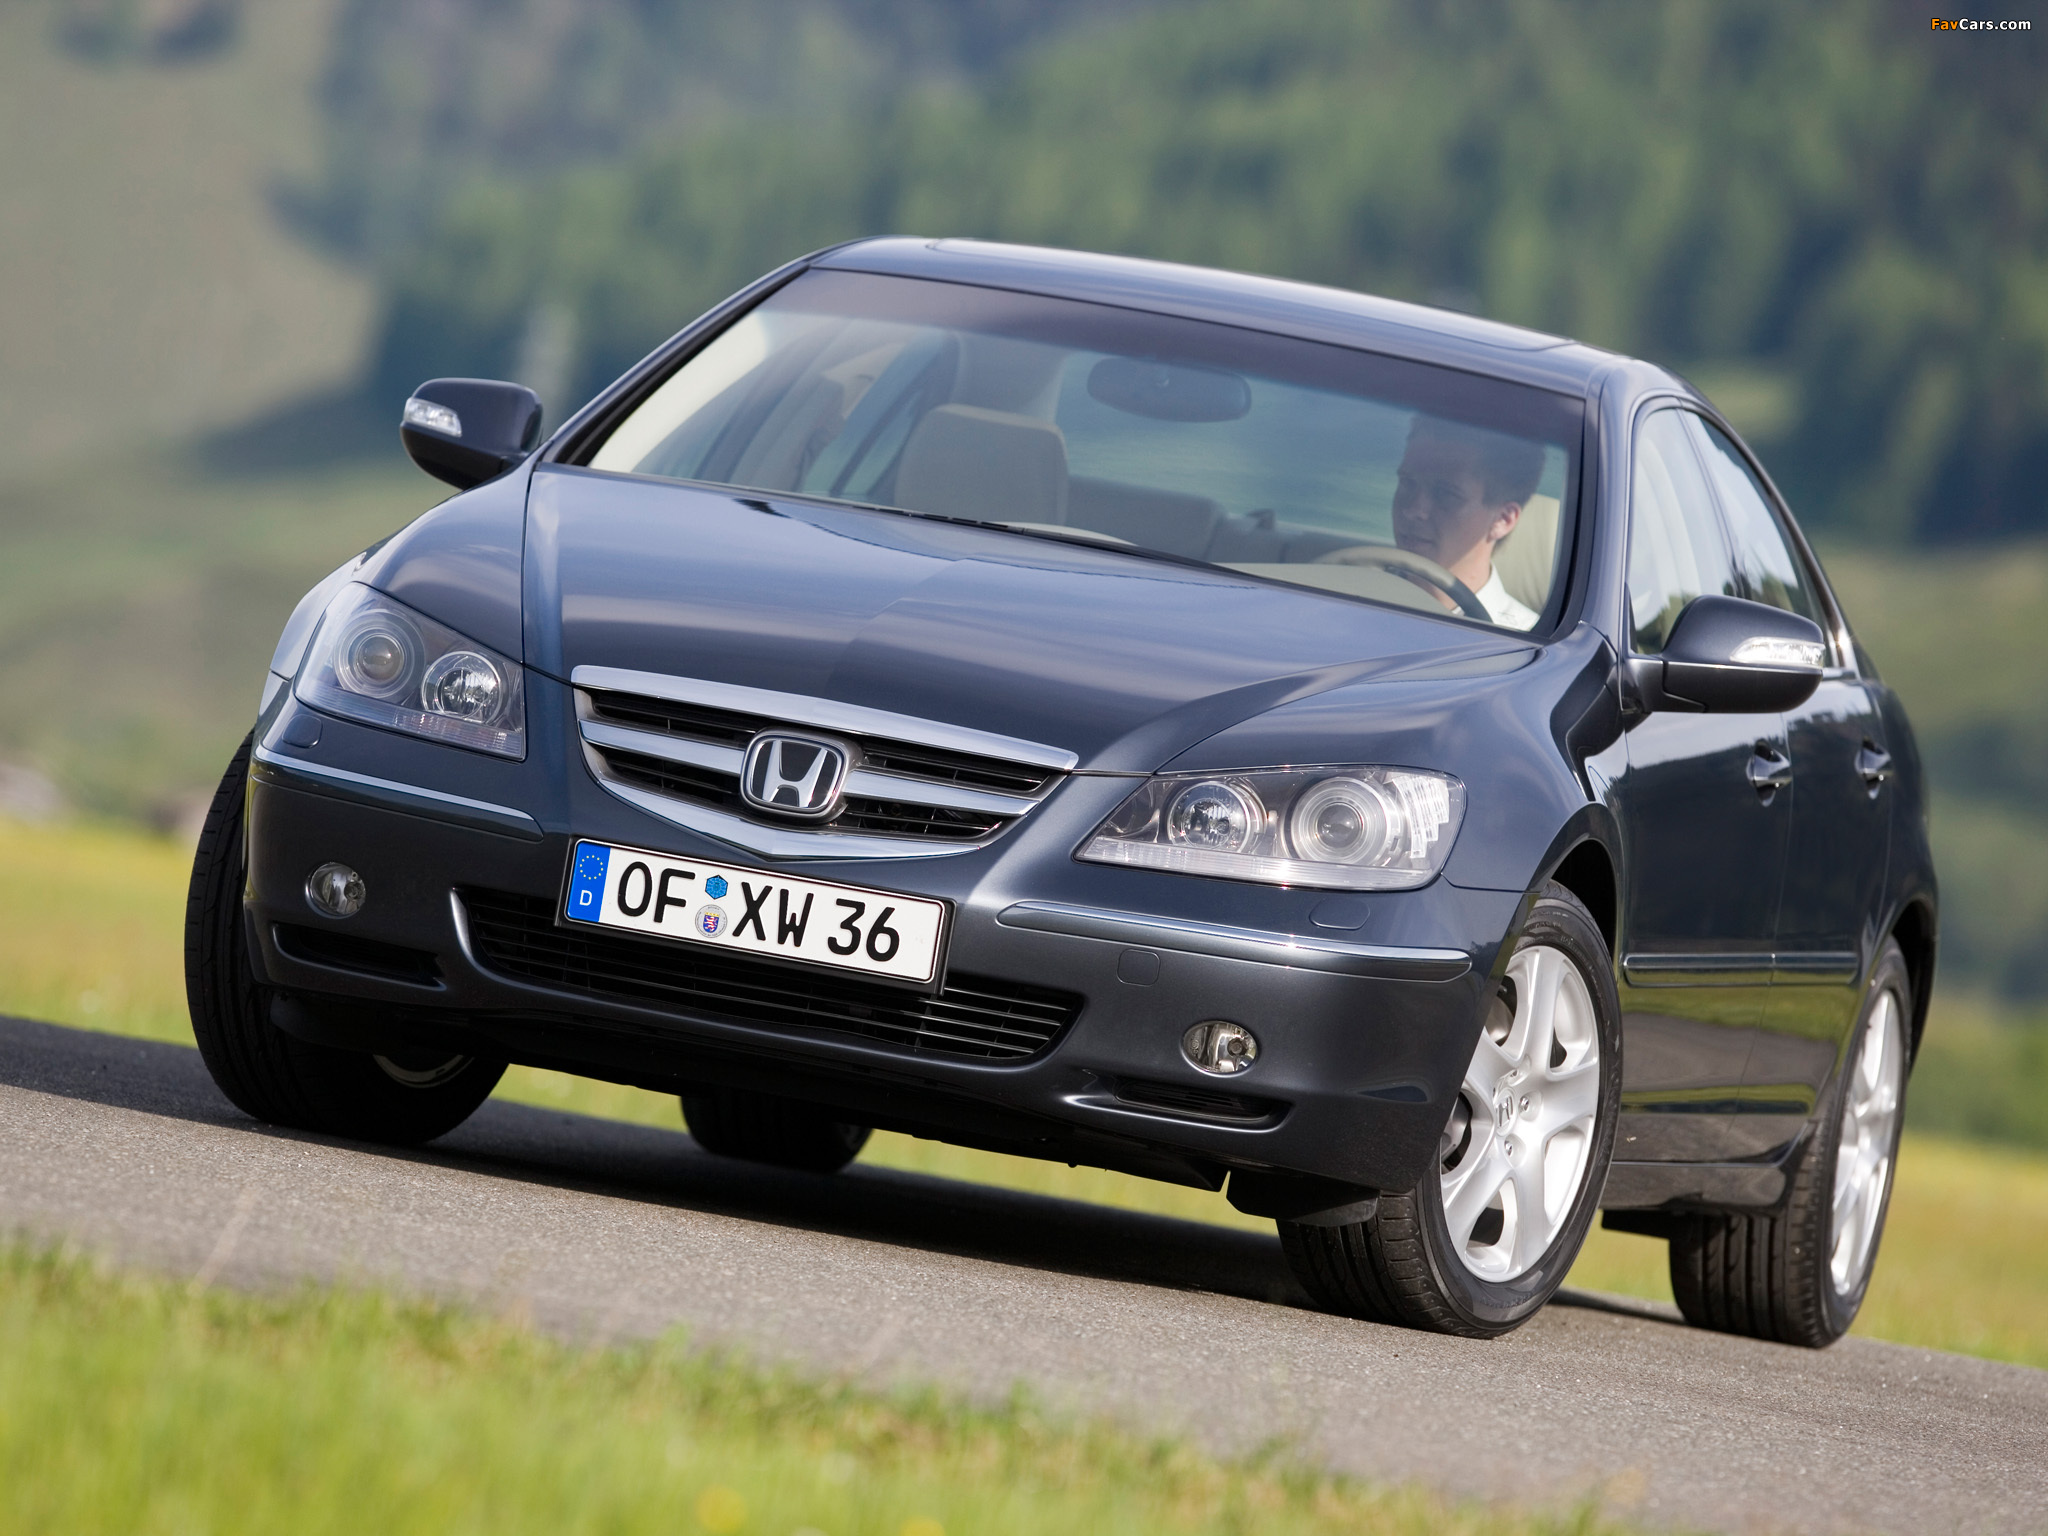 Cars honda legend iv (kb1) 2004 #1